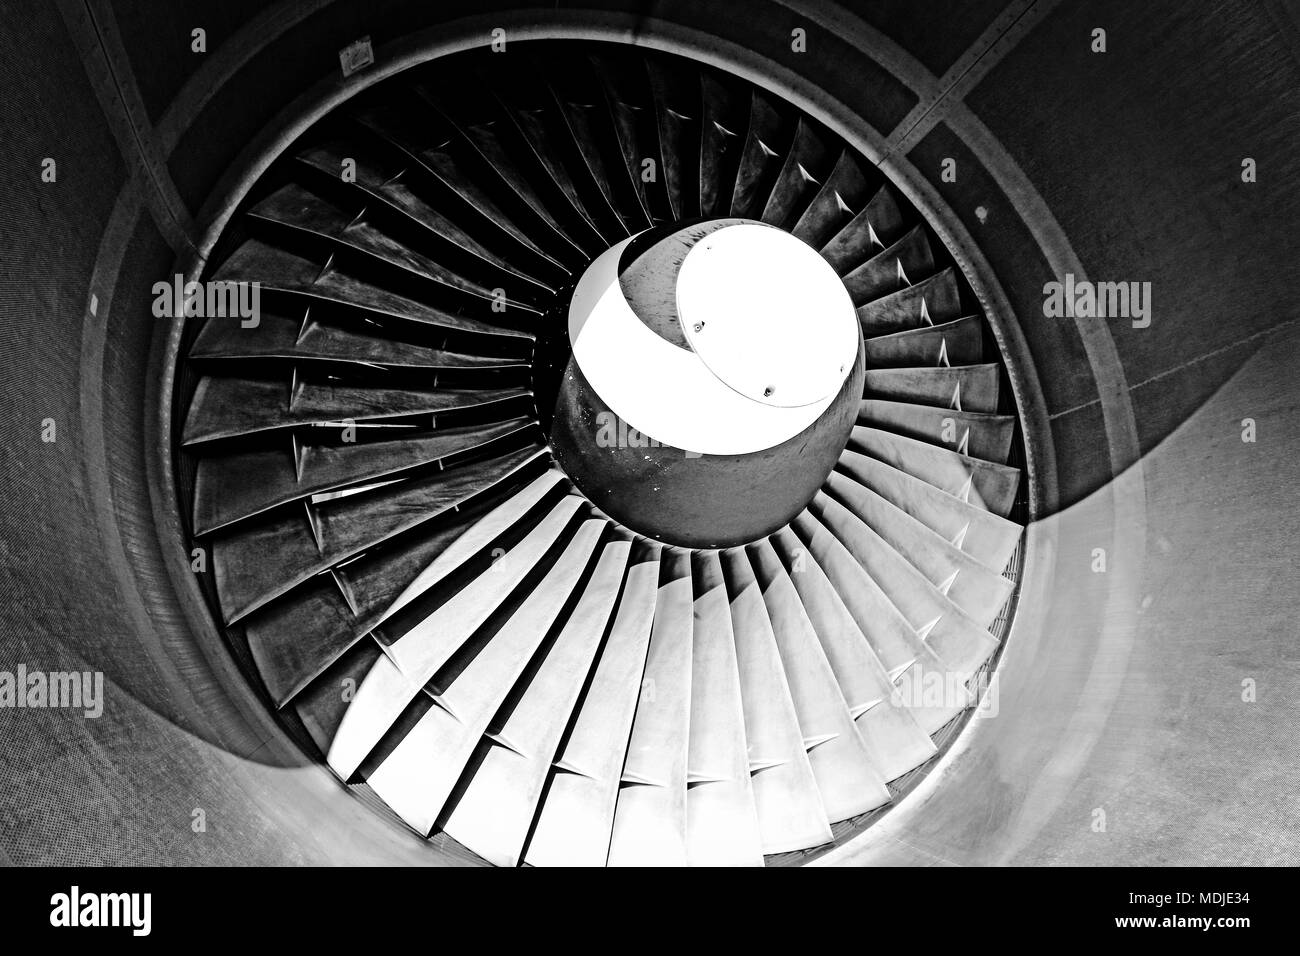 Fan of an Engine of a Boeing 747-400 - Stock Image